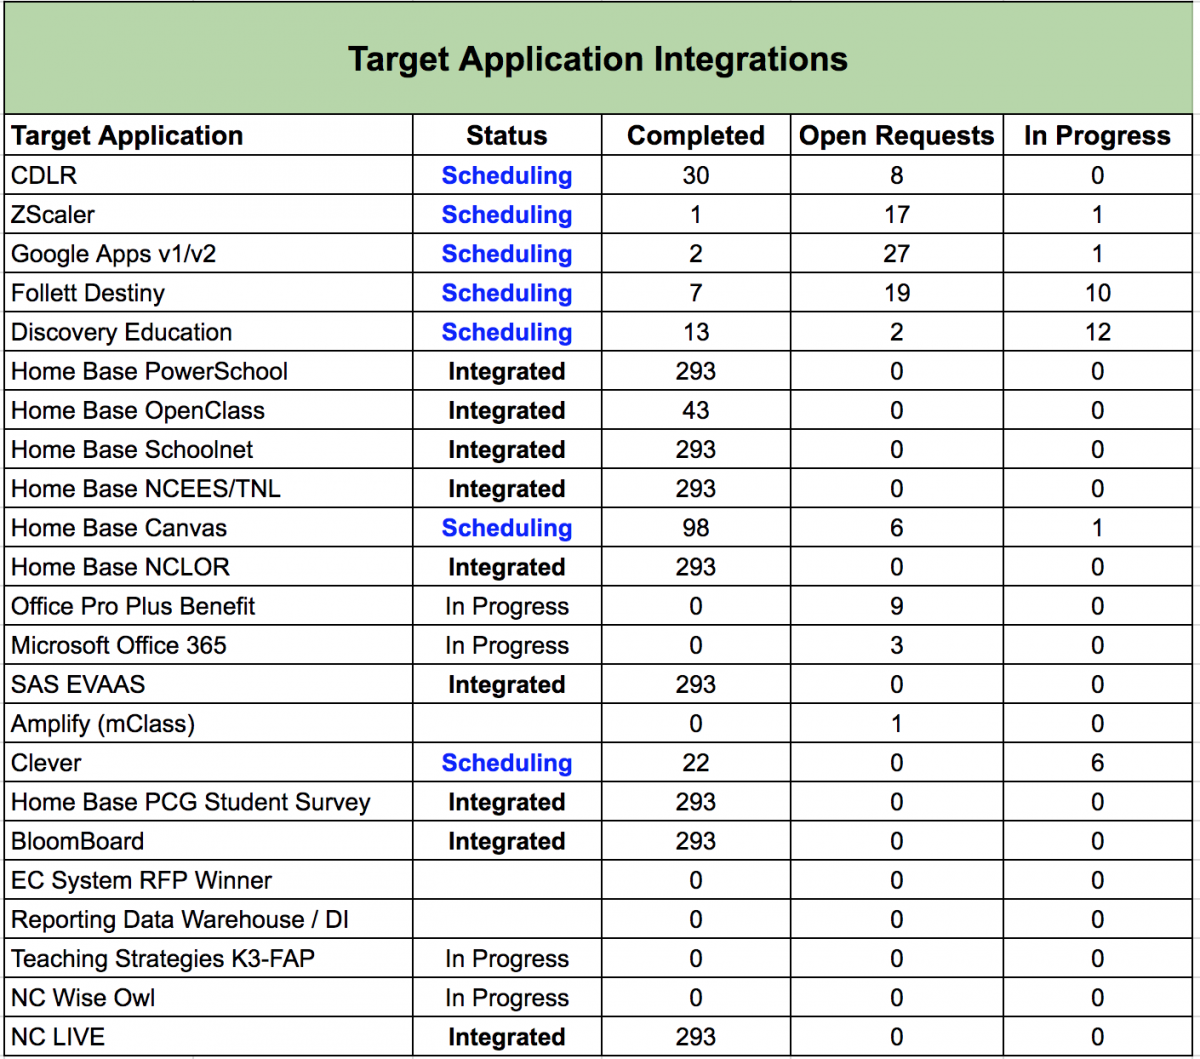 Count of Target Application Integrated